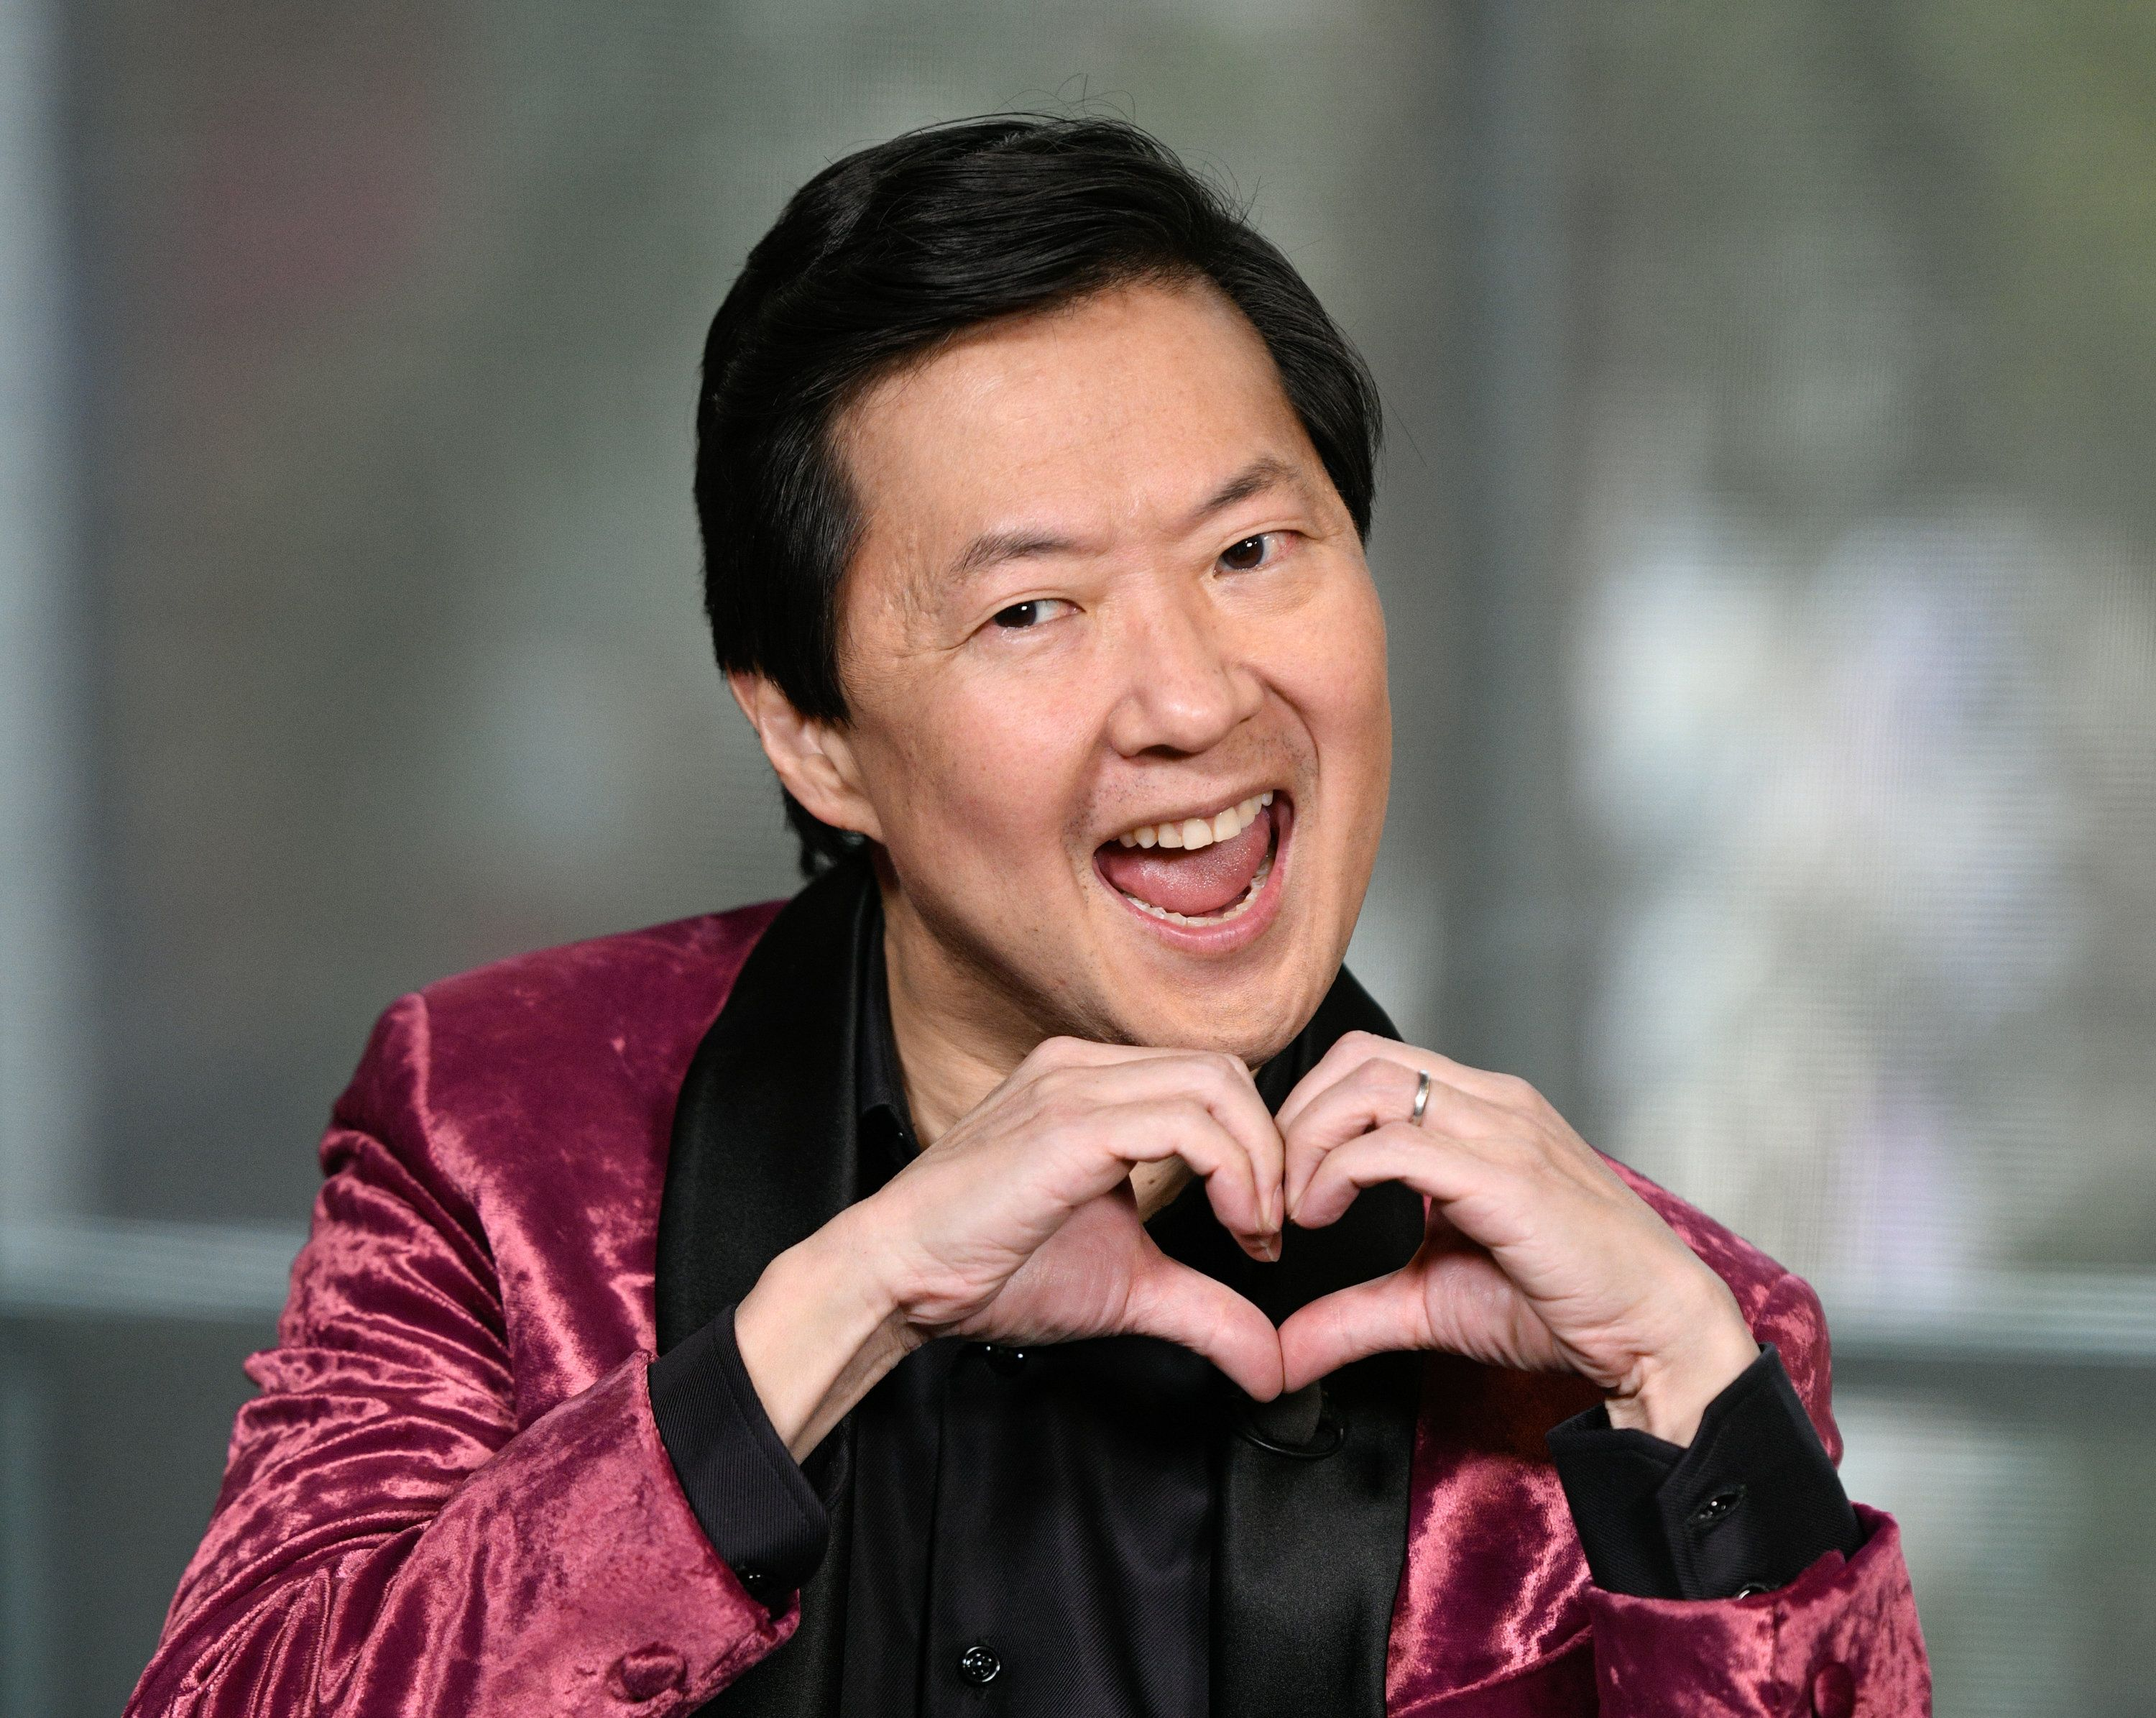 UNIVERSAL CITY, CALIFORNIA - FEBRUARY 13: Ken Jeong visits 'Extra' at Universal Studios Hollywood on February 13, 2019 in Universal City, California. (Photo by Noel Vasquez/Getty Images)